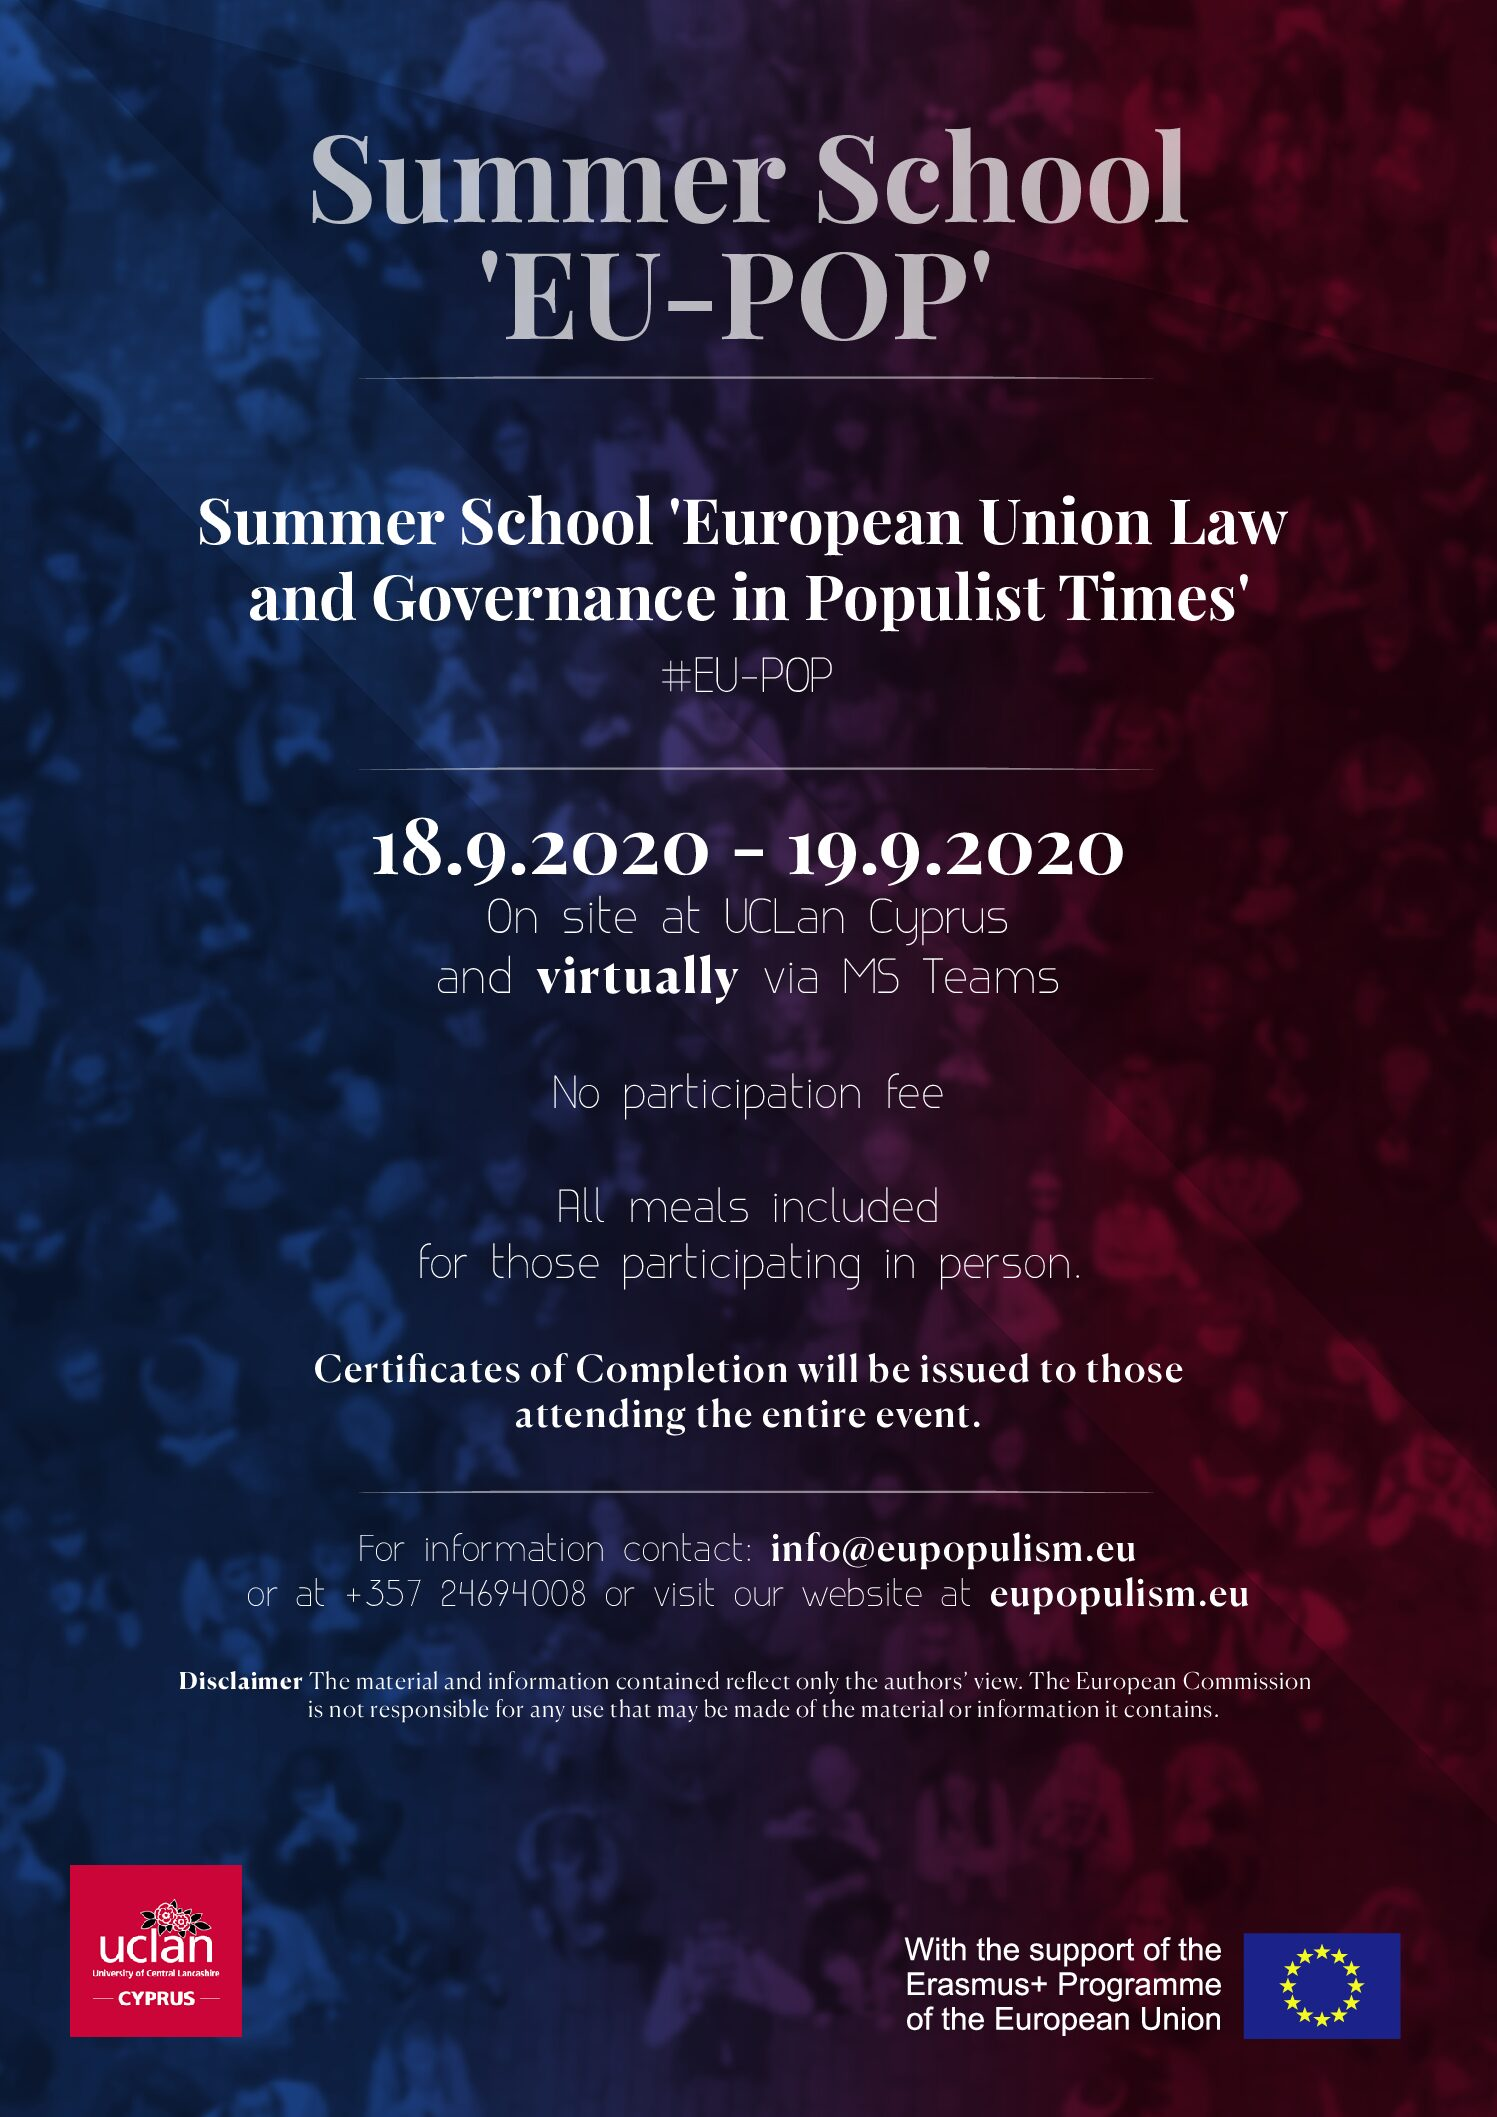 Upcoming Summer School on Populism Updated (18-19 September 2020)